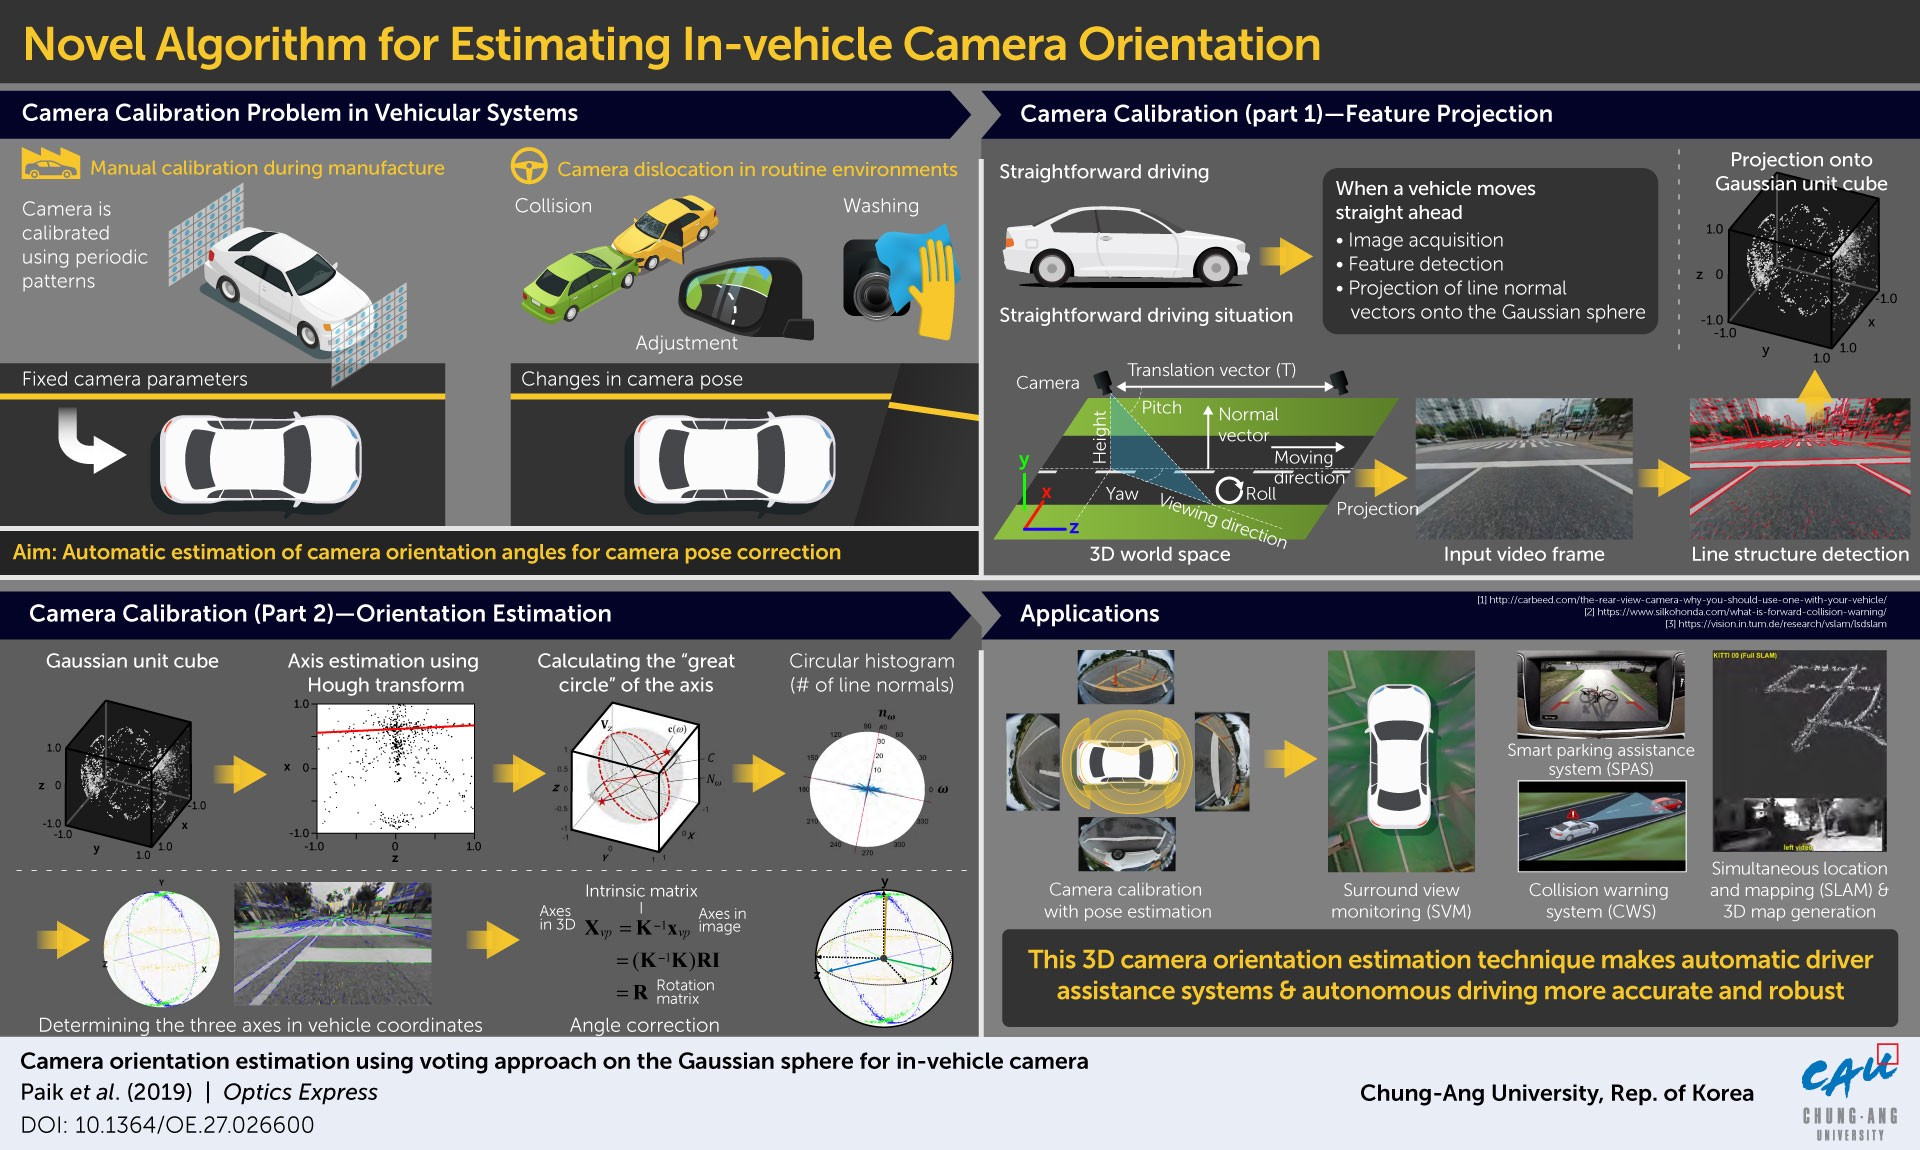 A faster and more accurate camera orientation estimation method that could make self-driving cars safer